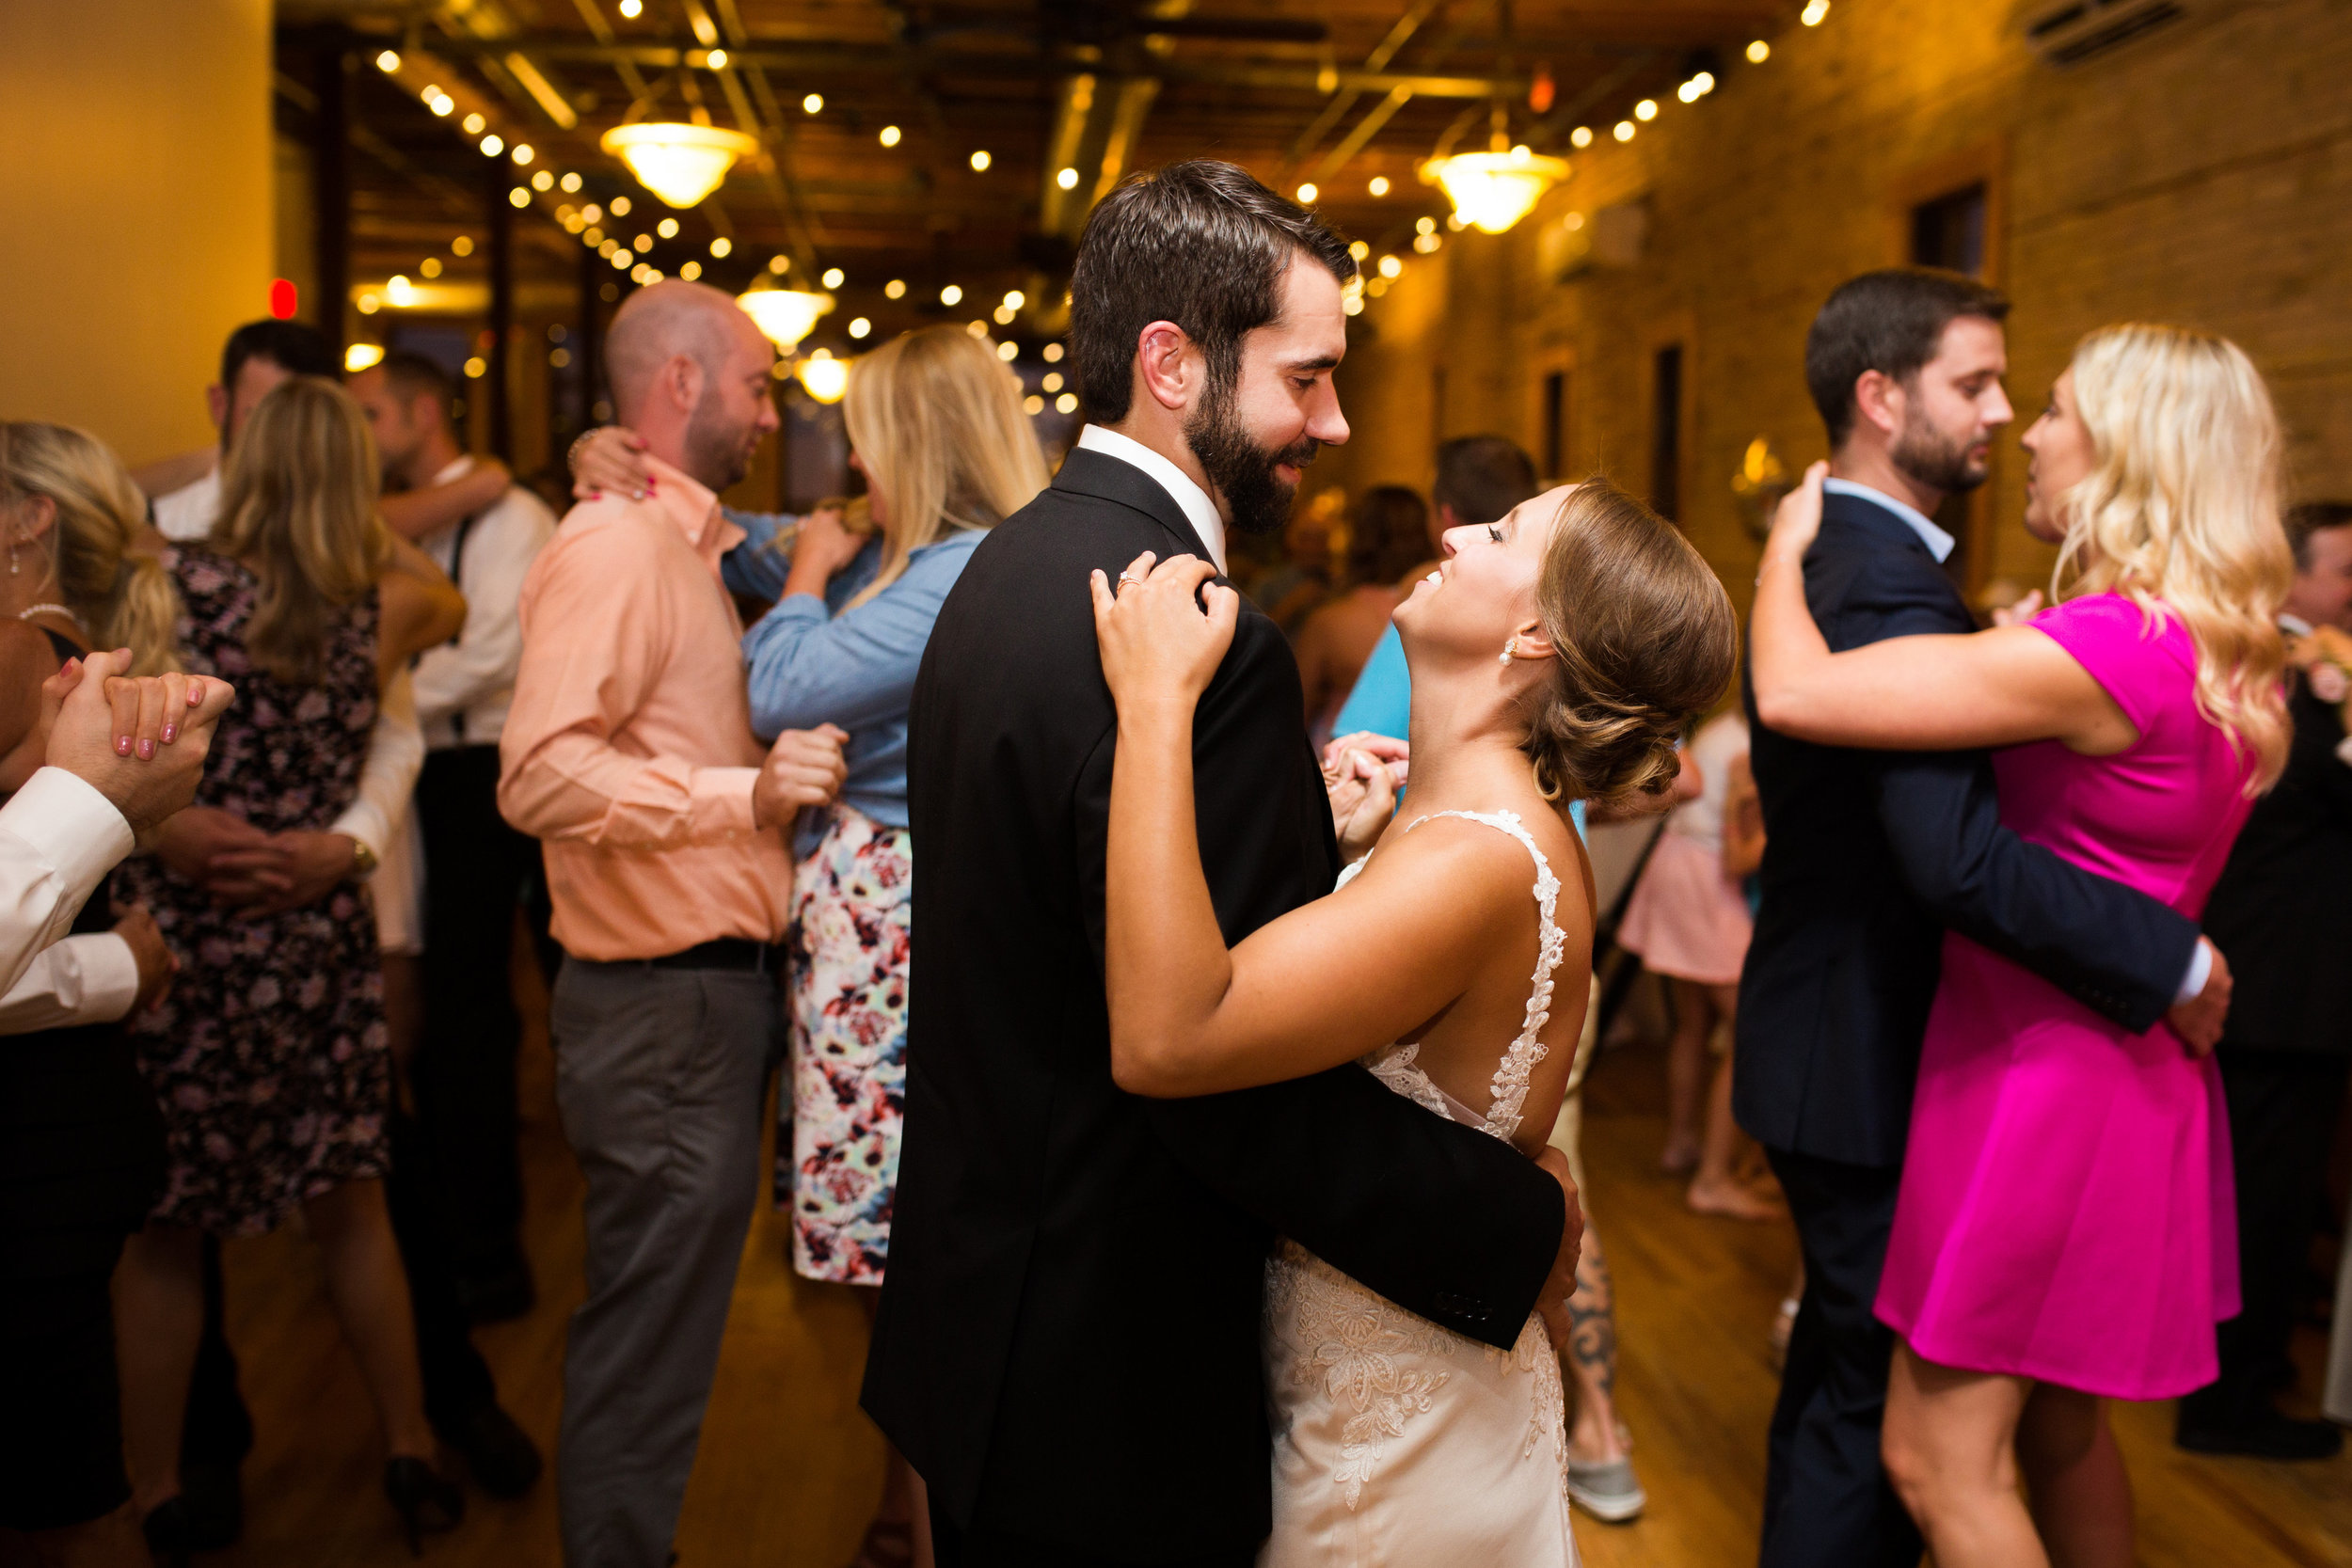 Kaylie + Travis | Sixpence Events wedding planner in the midwest | Studio KH photography | couples dance pictures